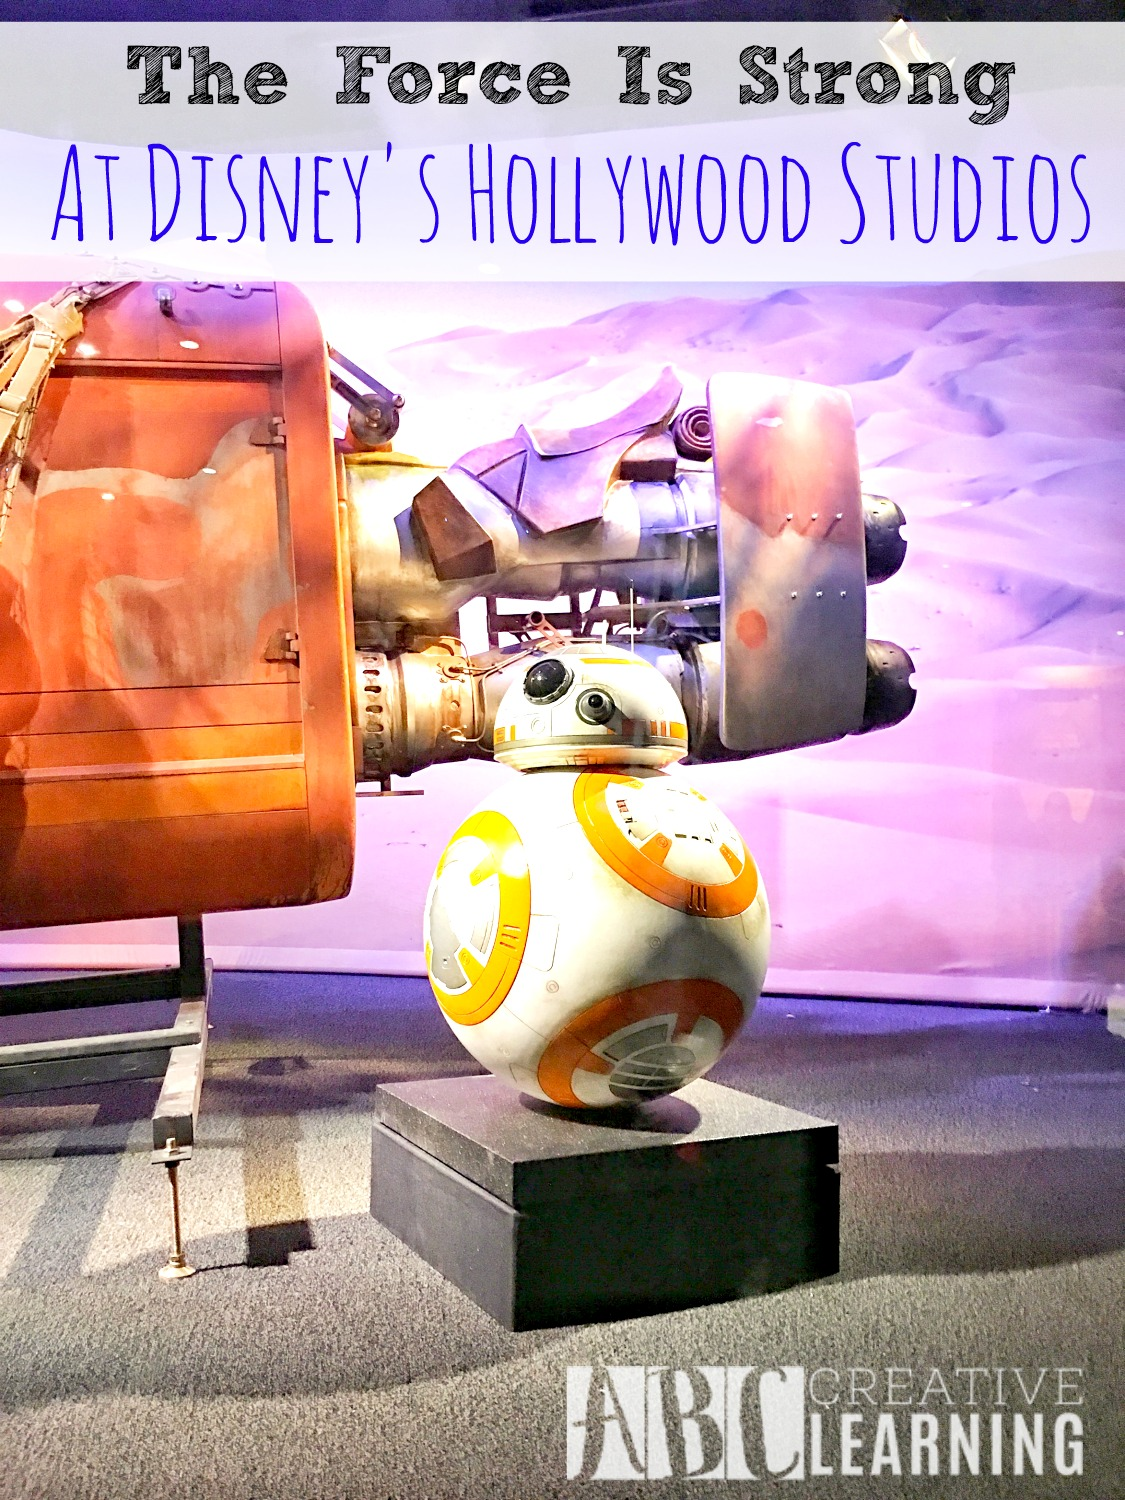 The Force Is Strong At Disney's Hollywood Studios bb8